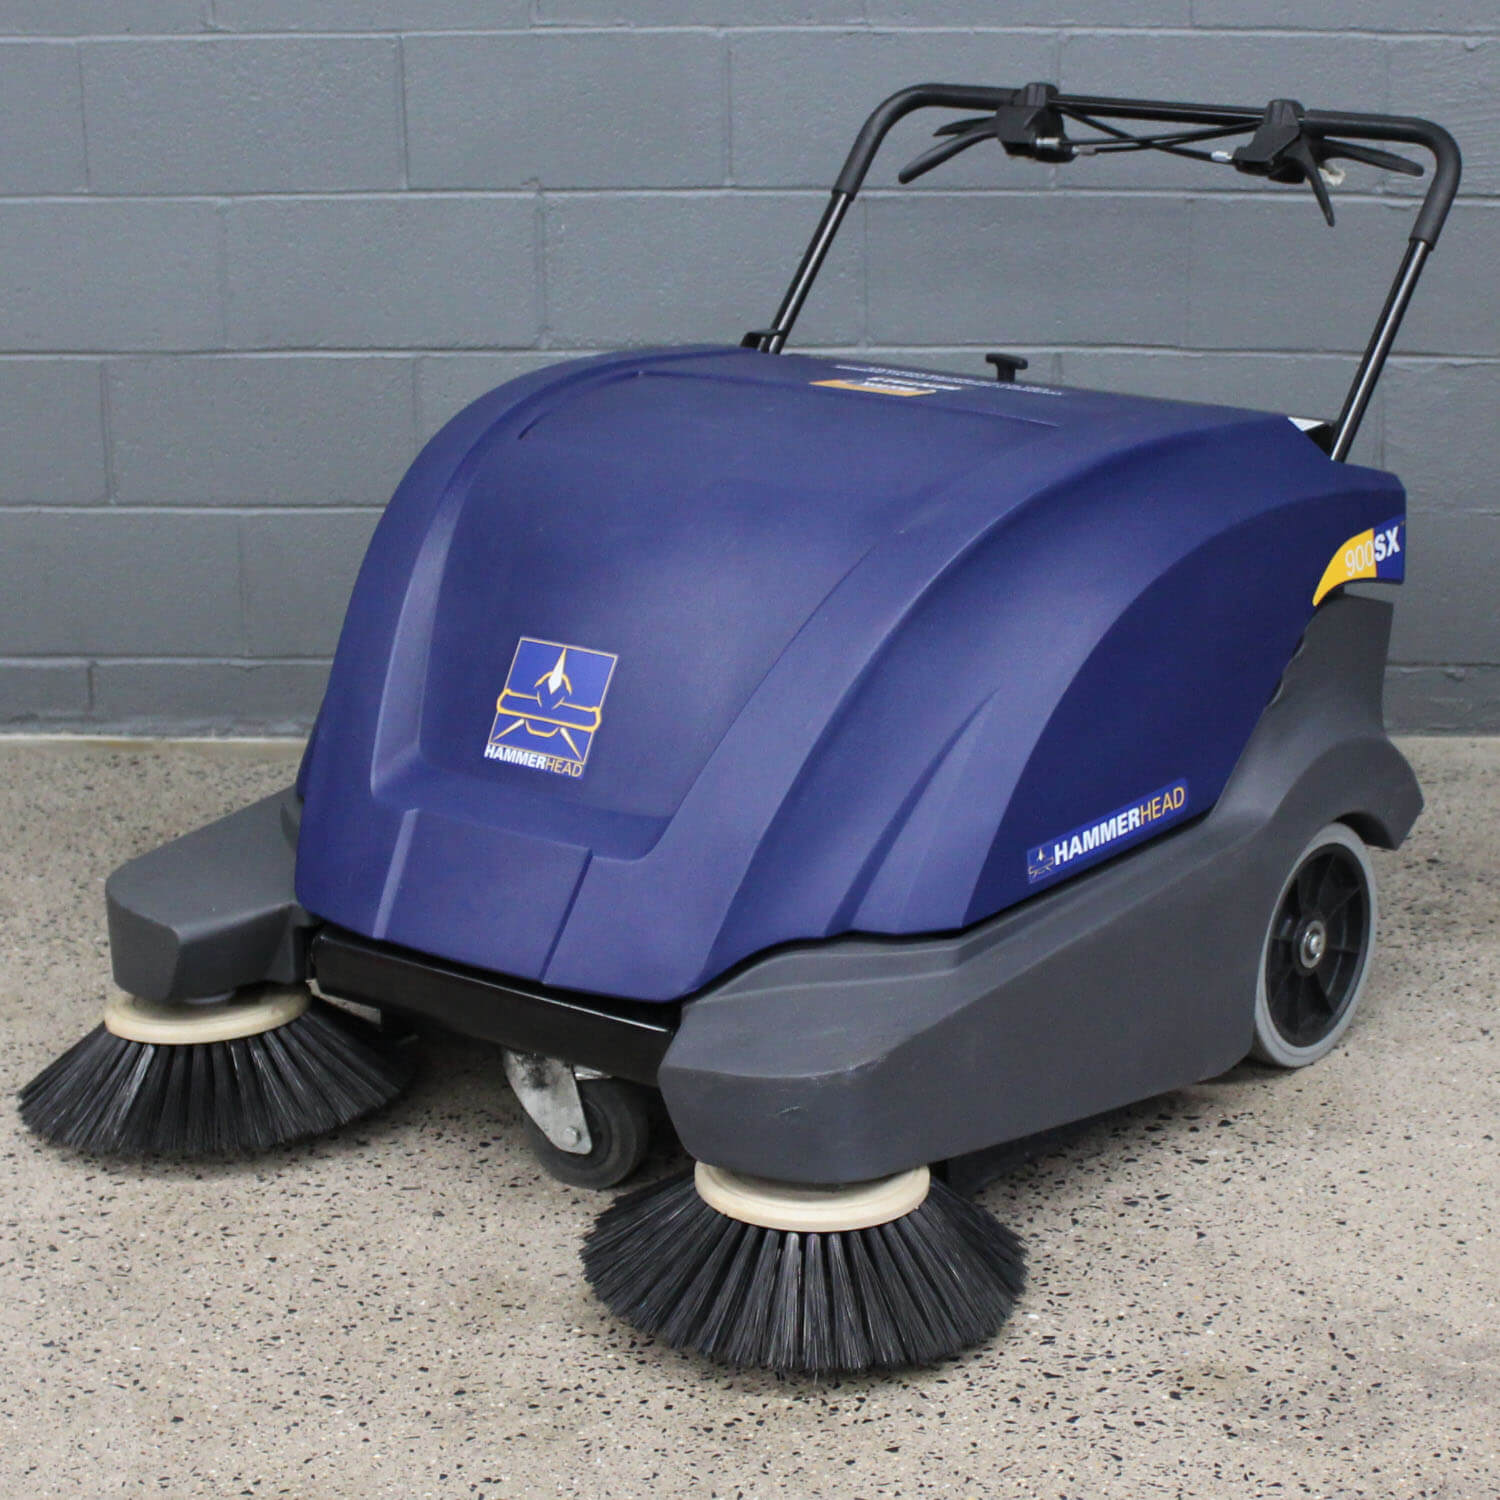 900sx Electric Walk Behind Sweeper Hammerhead Cleaning Equipment